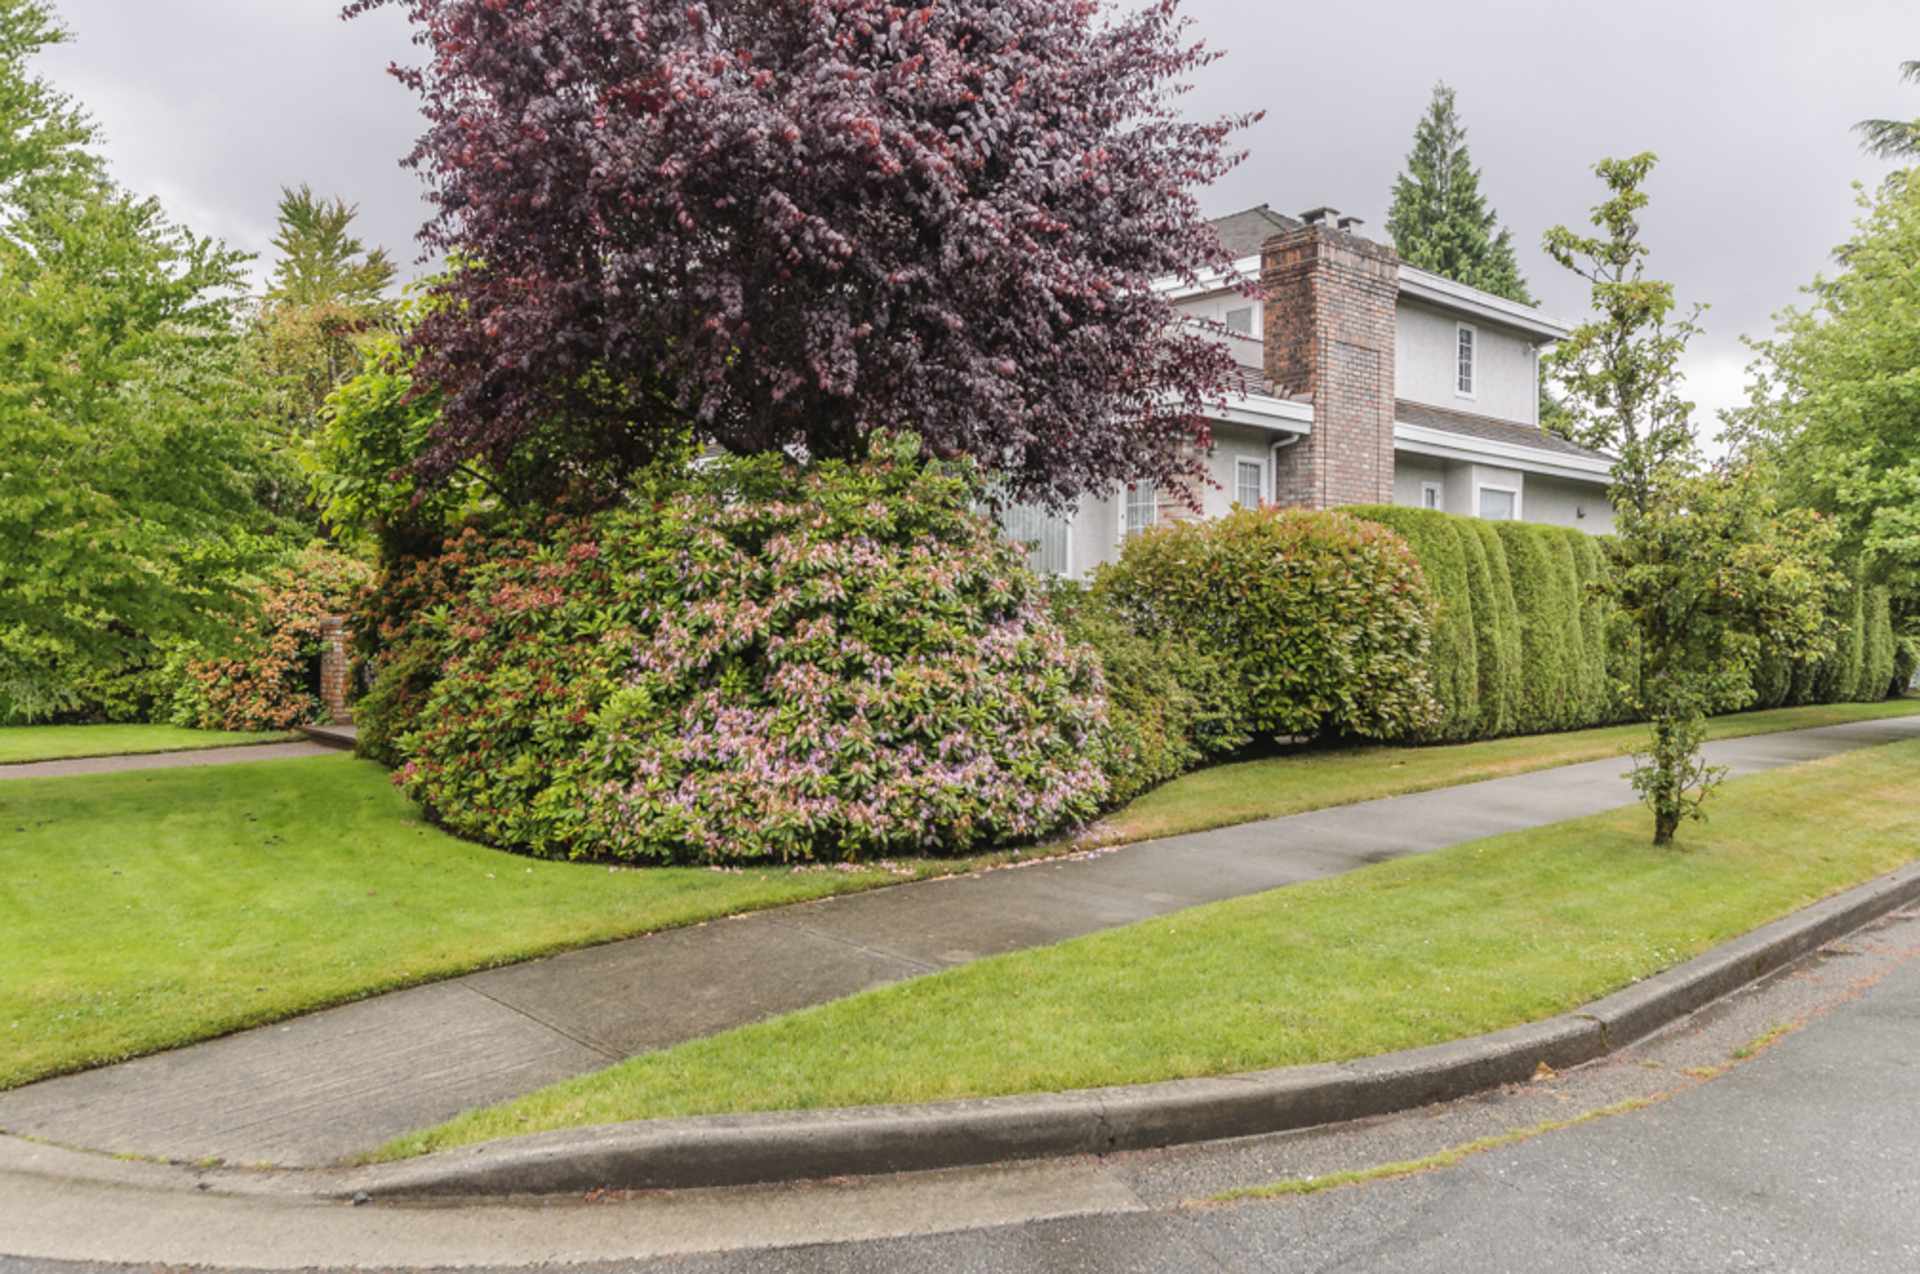 Beautiful & quiet area surrounded by other family homes - still close enough to major route to get anywhere in minutes! Including Oakridge Mall & other shopping at 1178 West 42nd Avenue, South Granville, Vancouver West